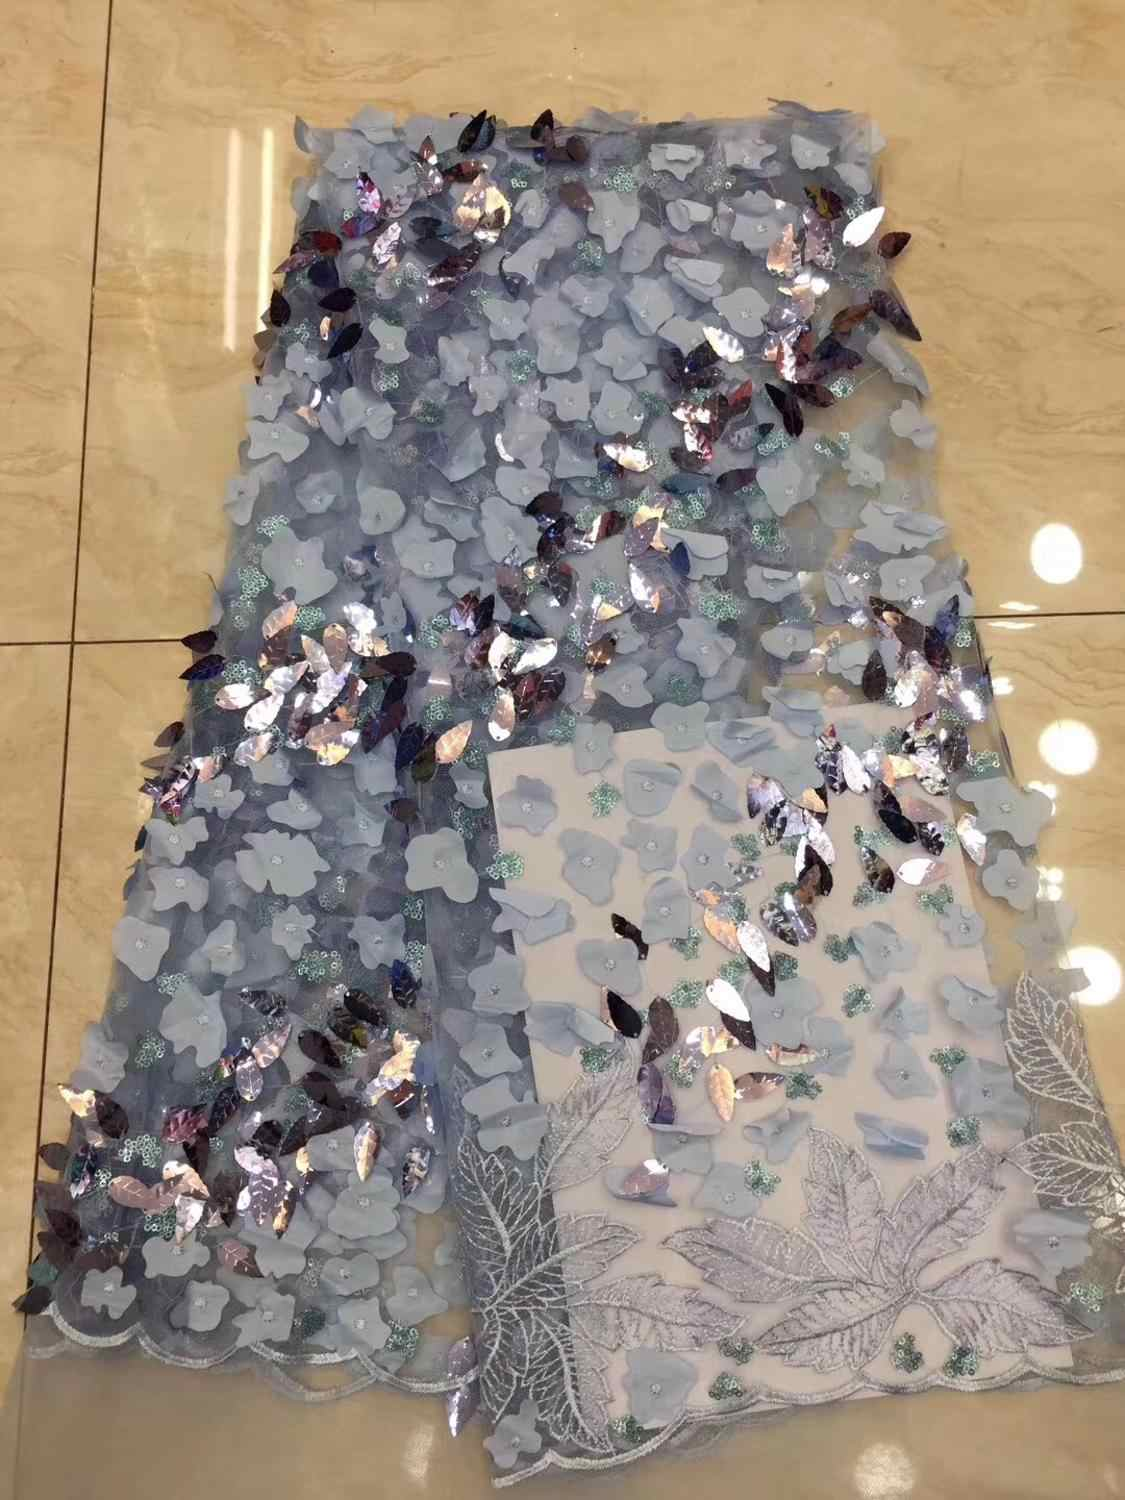 Latest black French Nigerian Laces Fabrics 2019 High Quality Tulle African Laces Fabric Wedding African French Tulle Lace  F5J